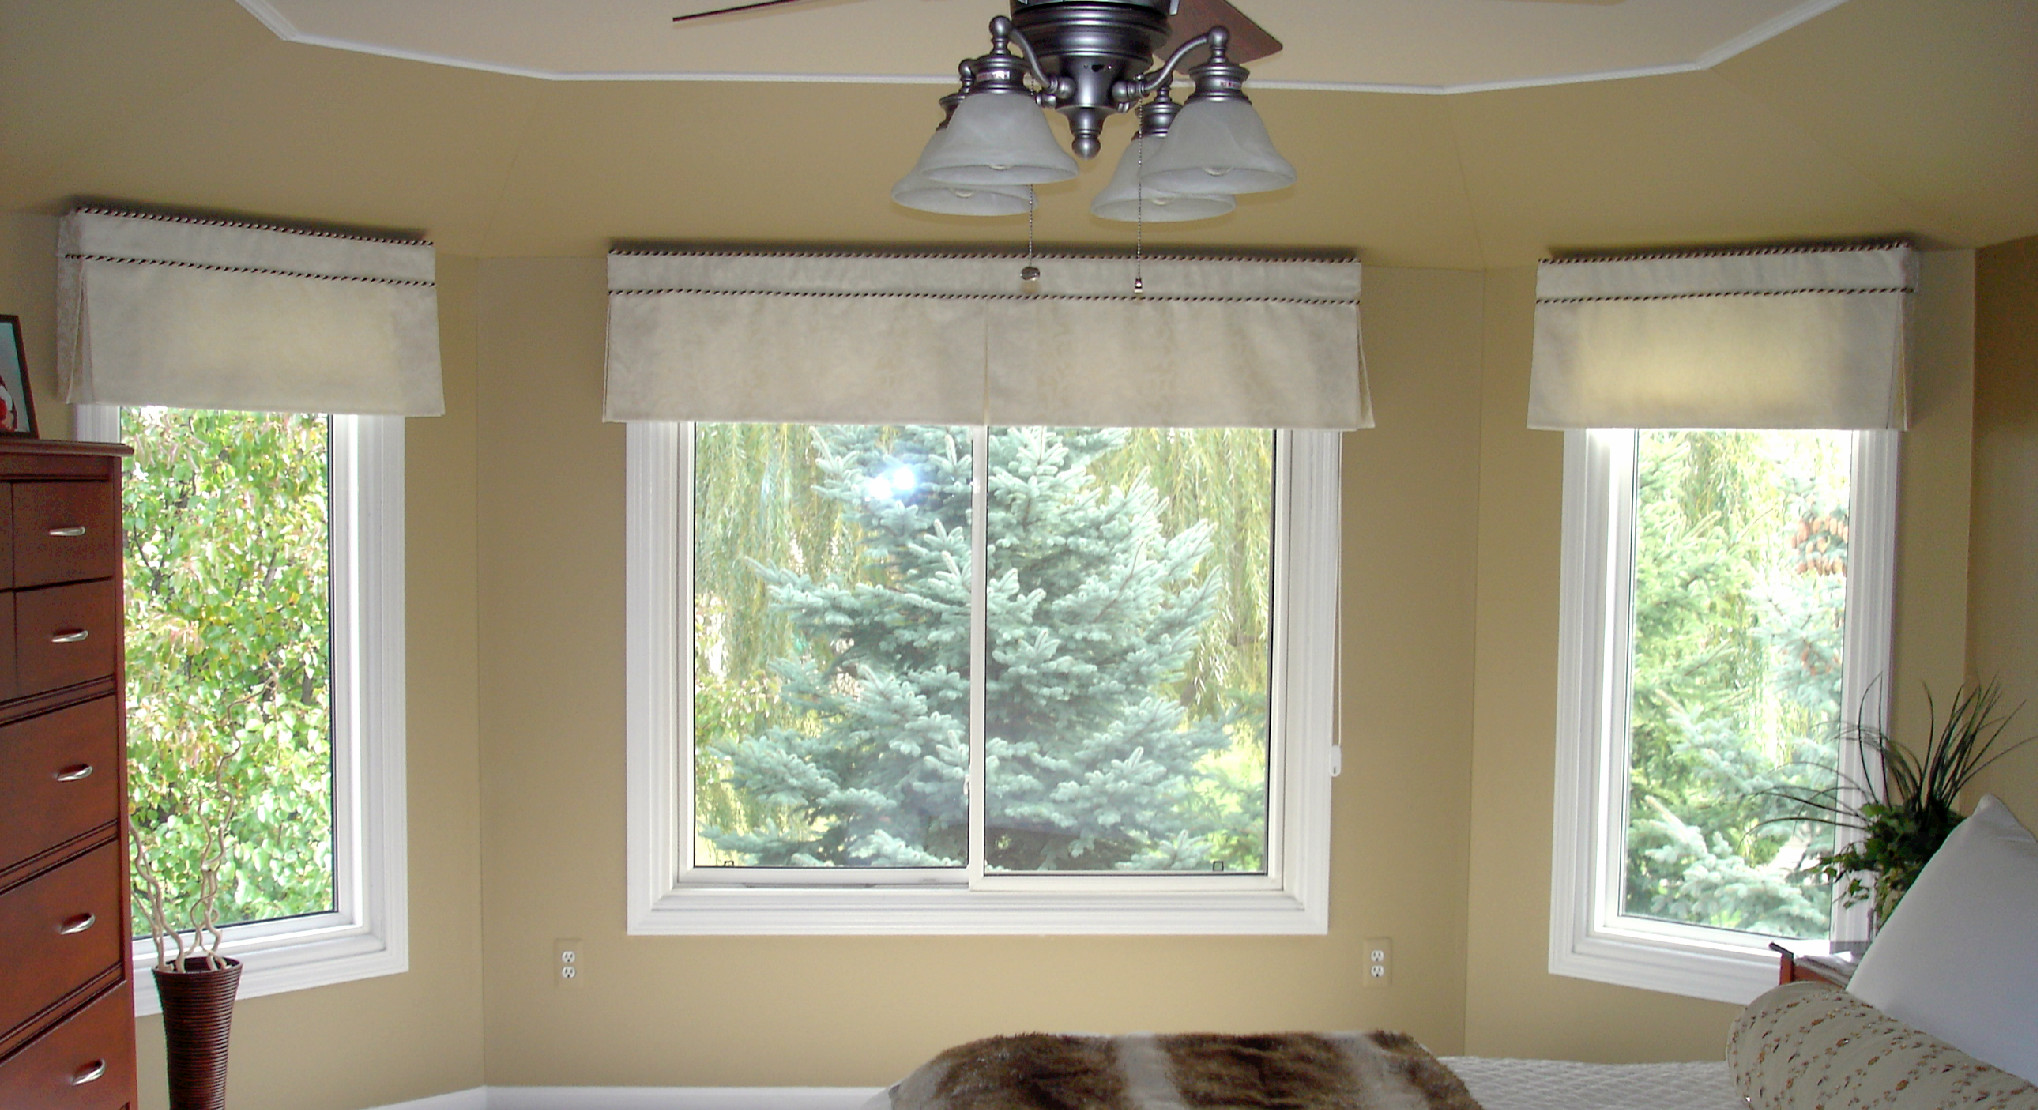 Bedroom Valance Ideas Valances Window Treatments Ideas Window Treatments Design Ideas